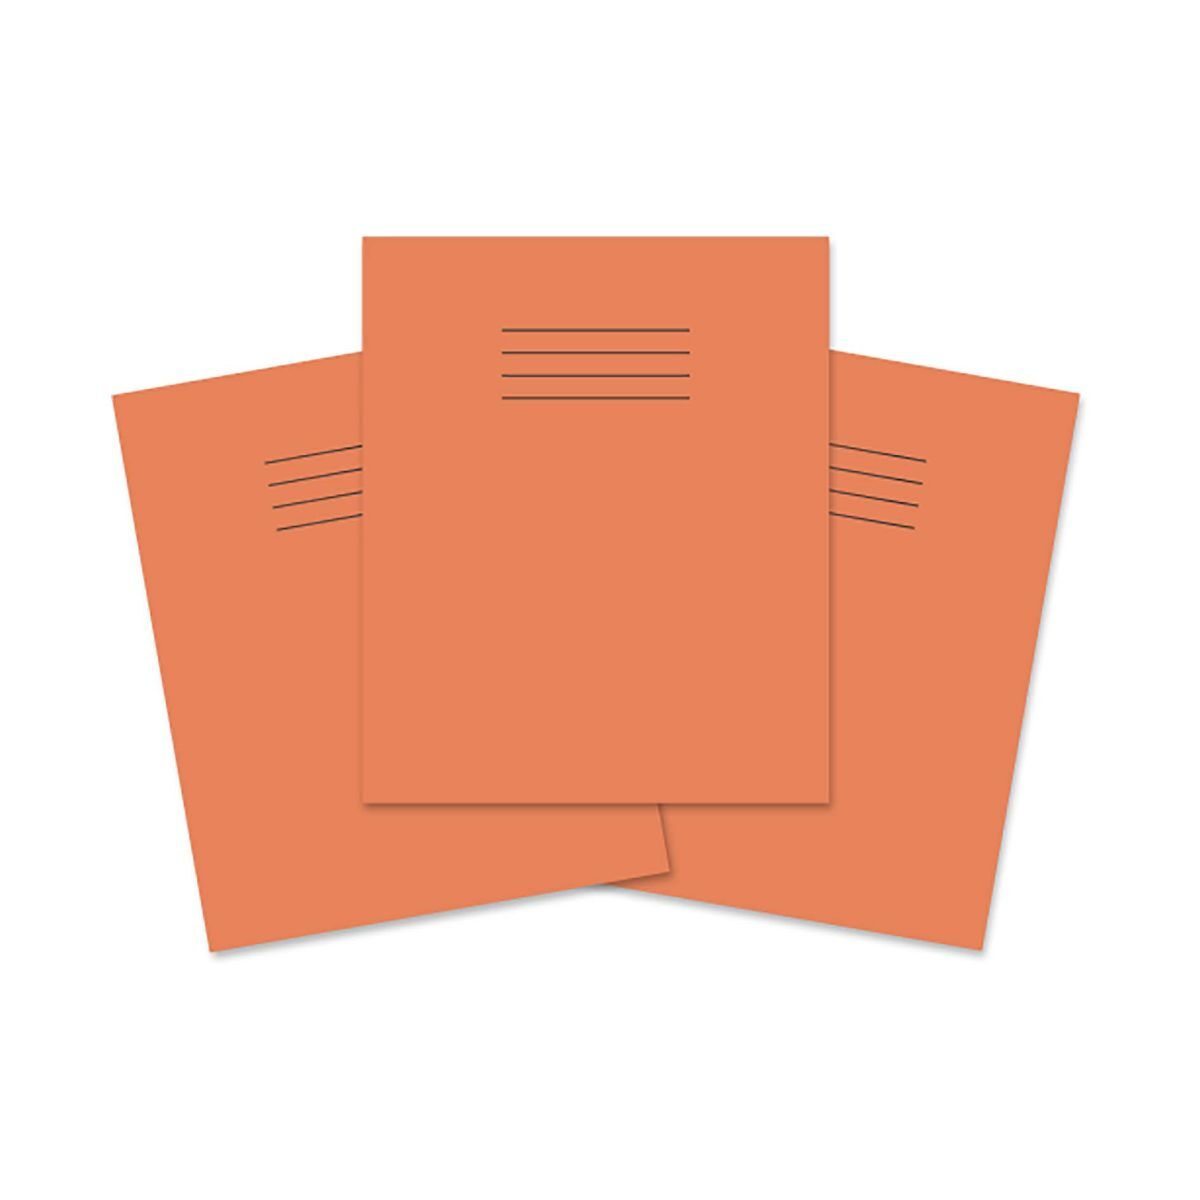 Rhino Exercise Book 8 inch x 6.5 Inch 48 Pages Top Half Plain Bottom Half 12mm Ruled Pack of 100